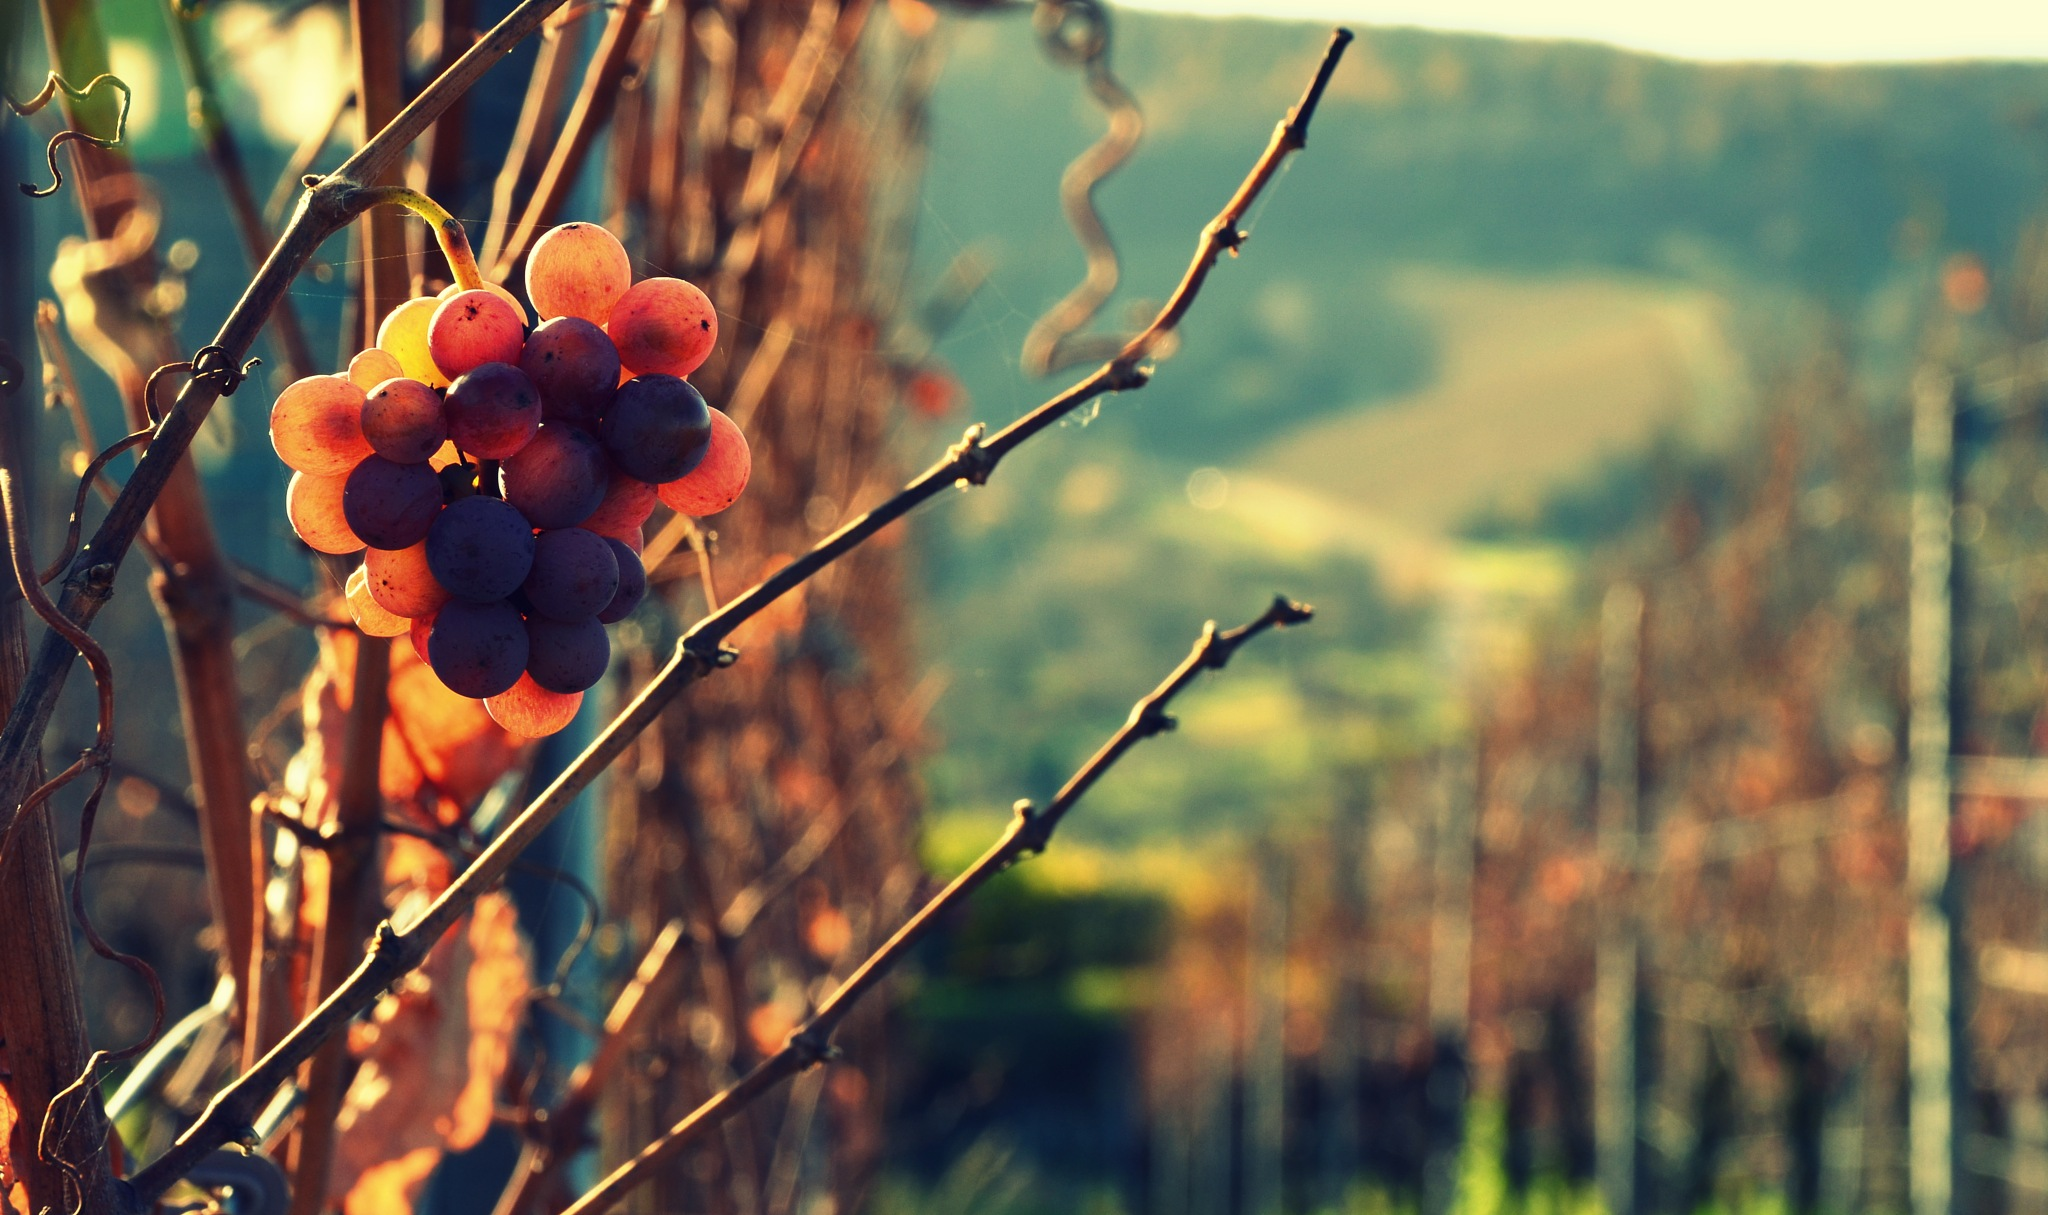 Late grapes by Stoica Emilian